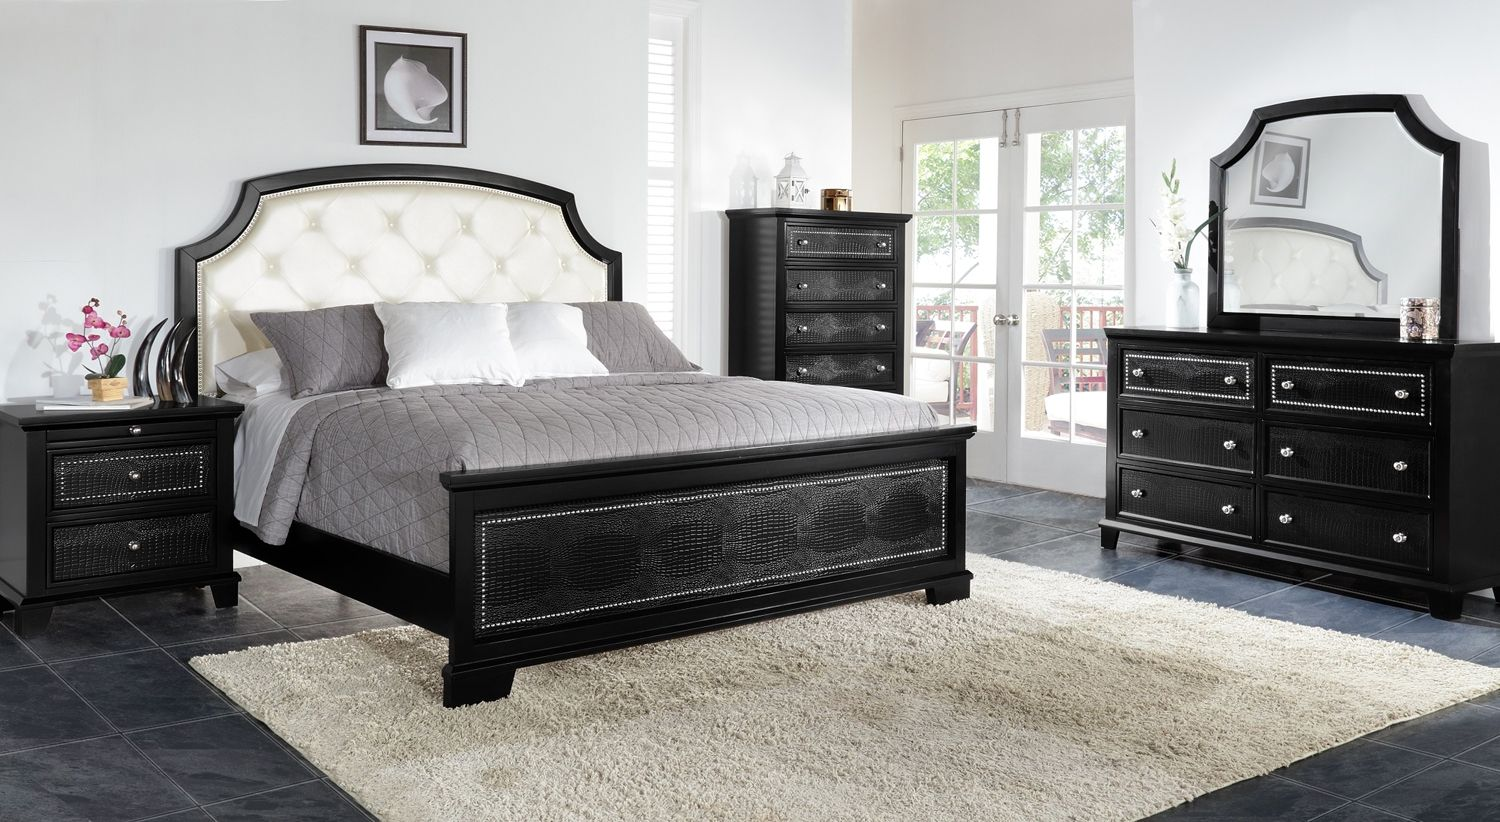 Marlina Bedroom Collection Leon S 800 For The Bed Frame